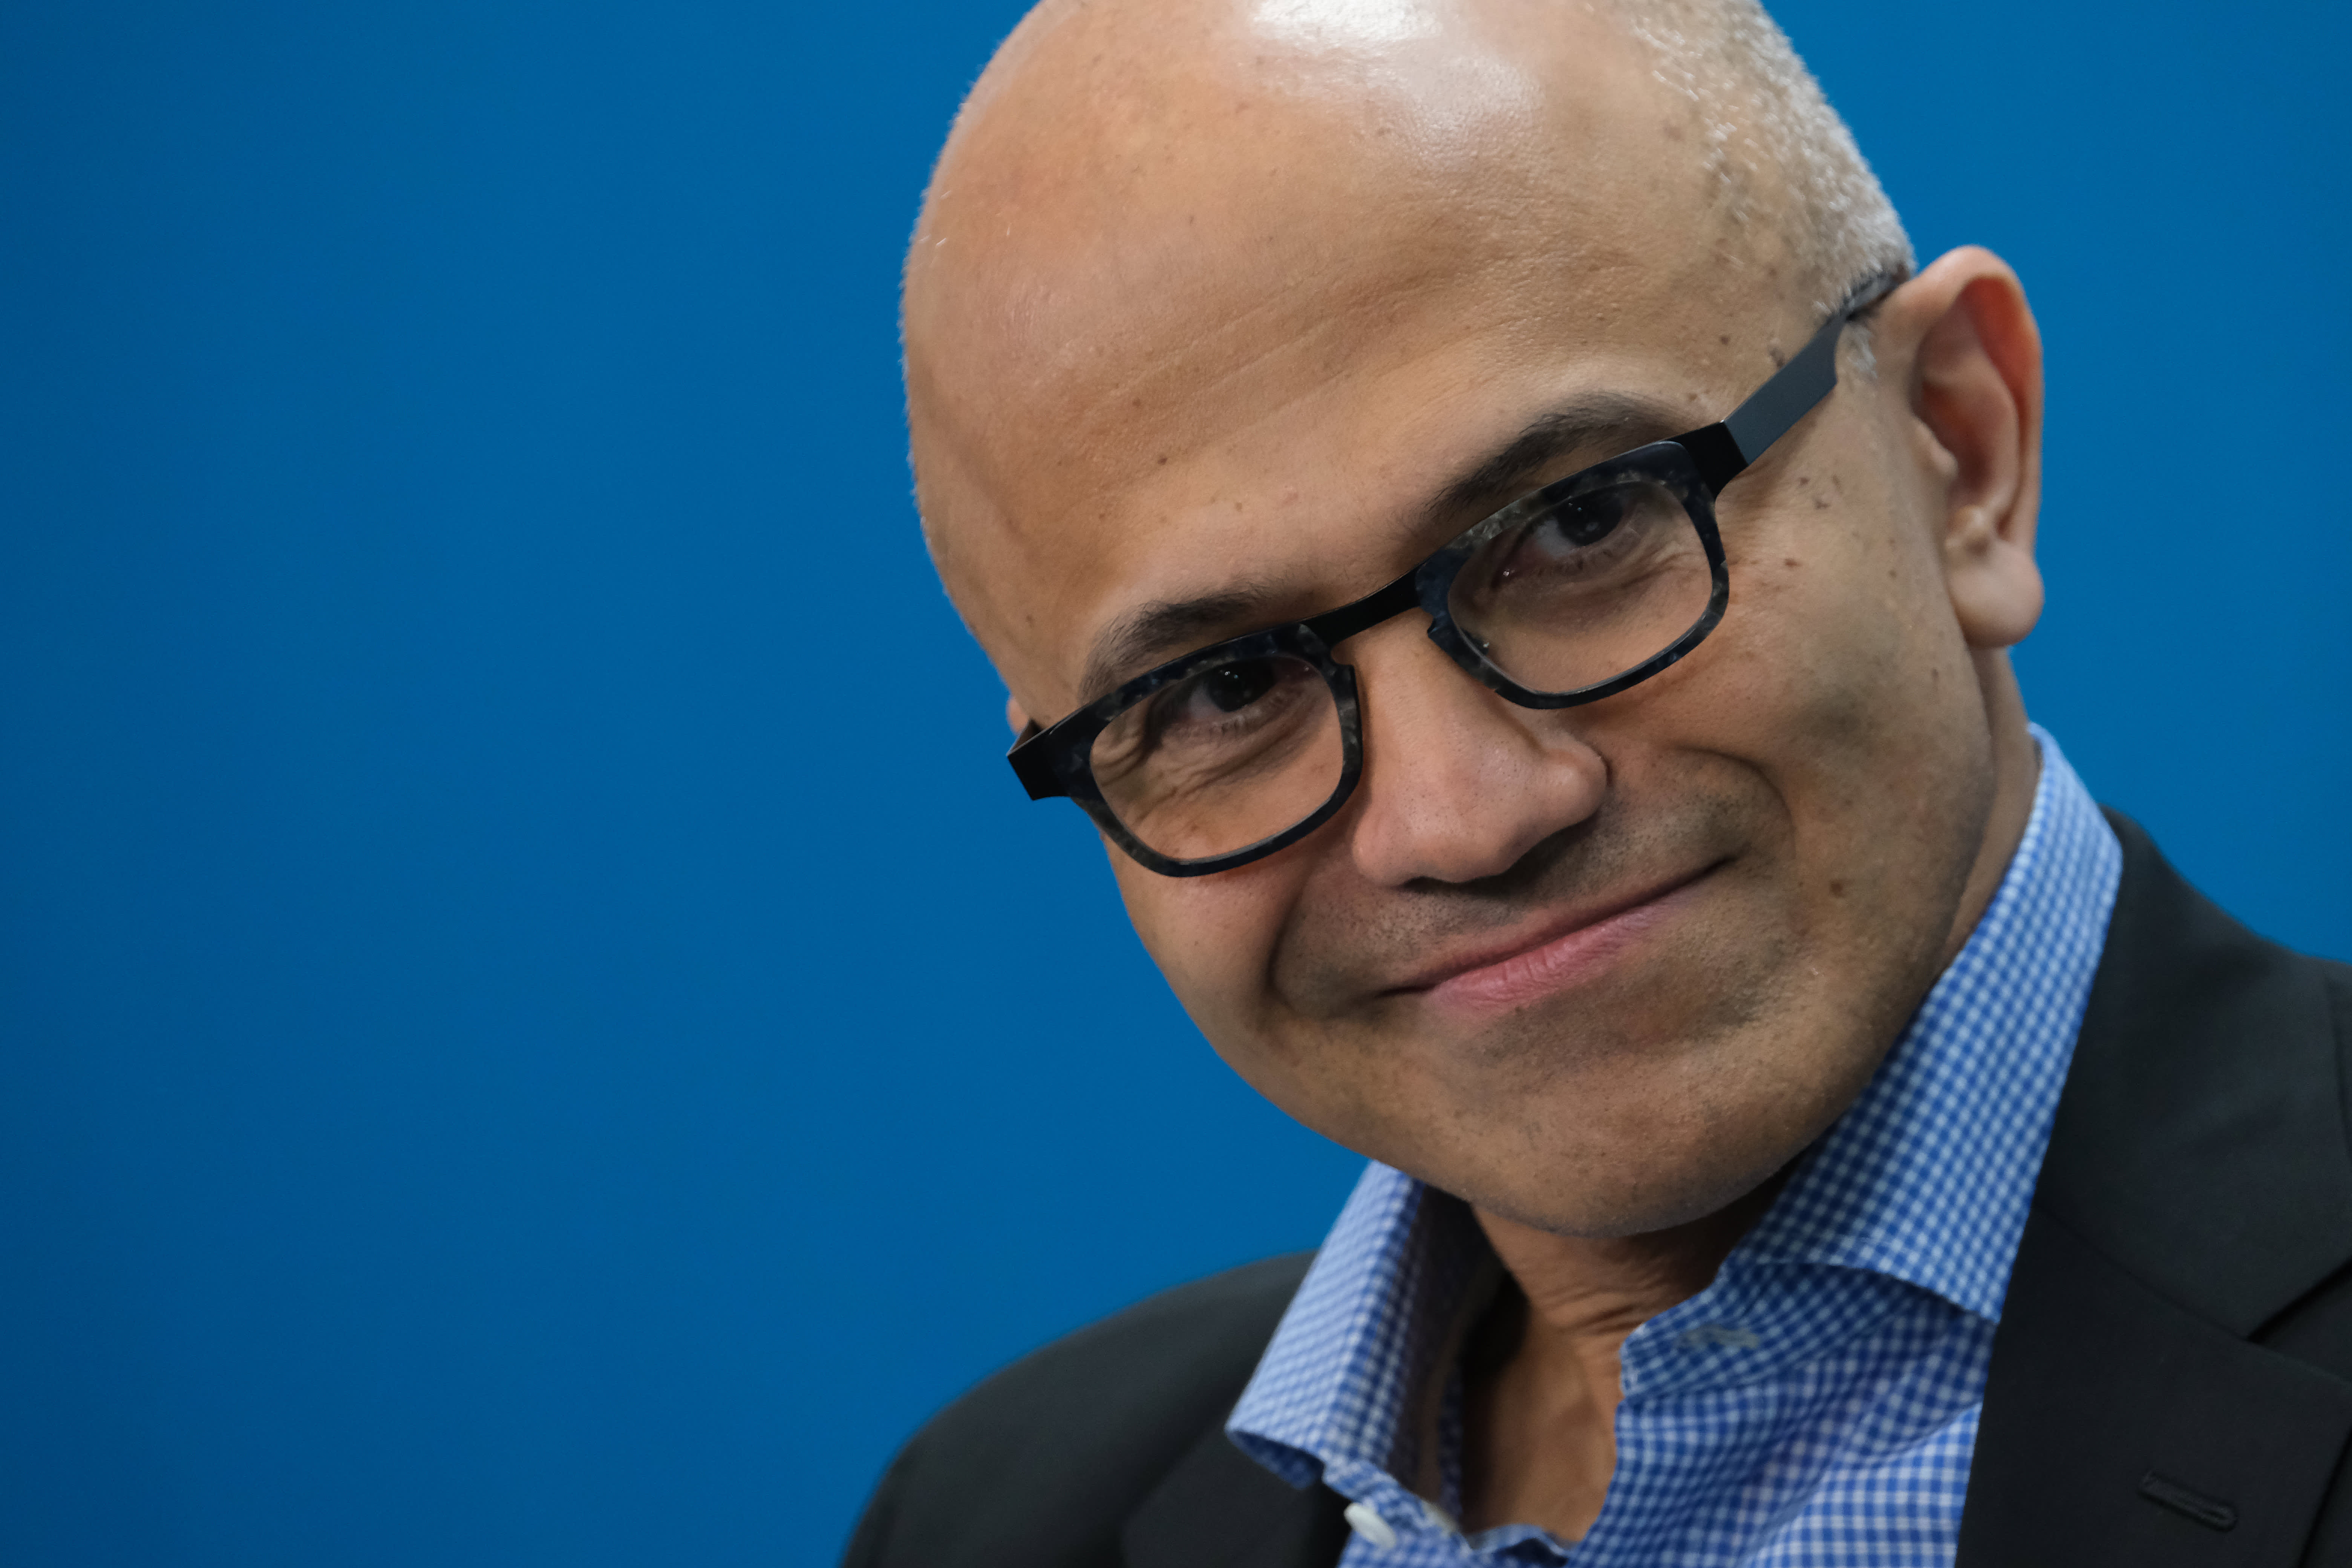 Microsoft CEO's 2 morning rituals to help 'orient yourself for the day'